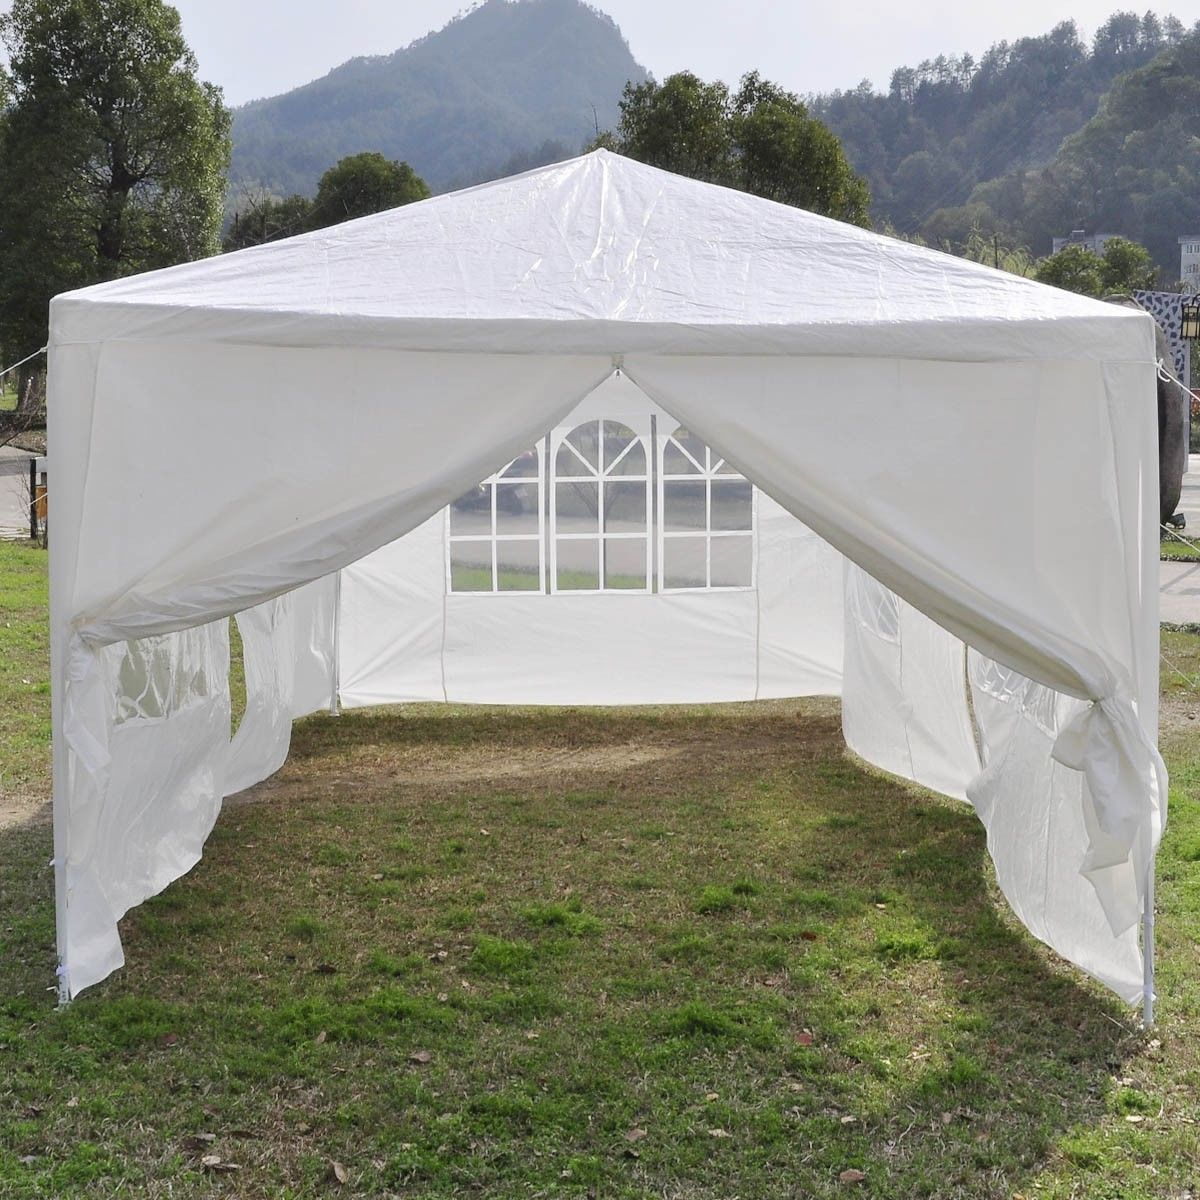 Canopy Party Tents 20 X 40 Tent Rental Packages Pictures to pin on ...